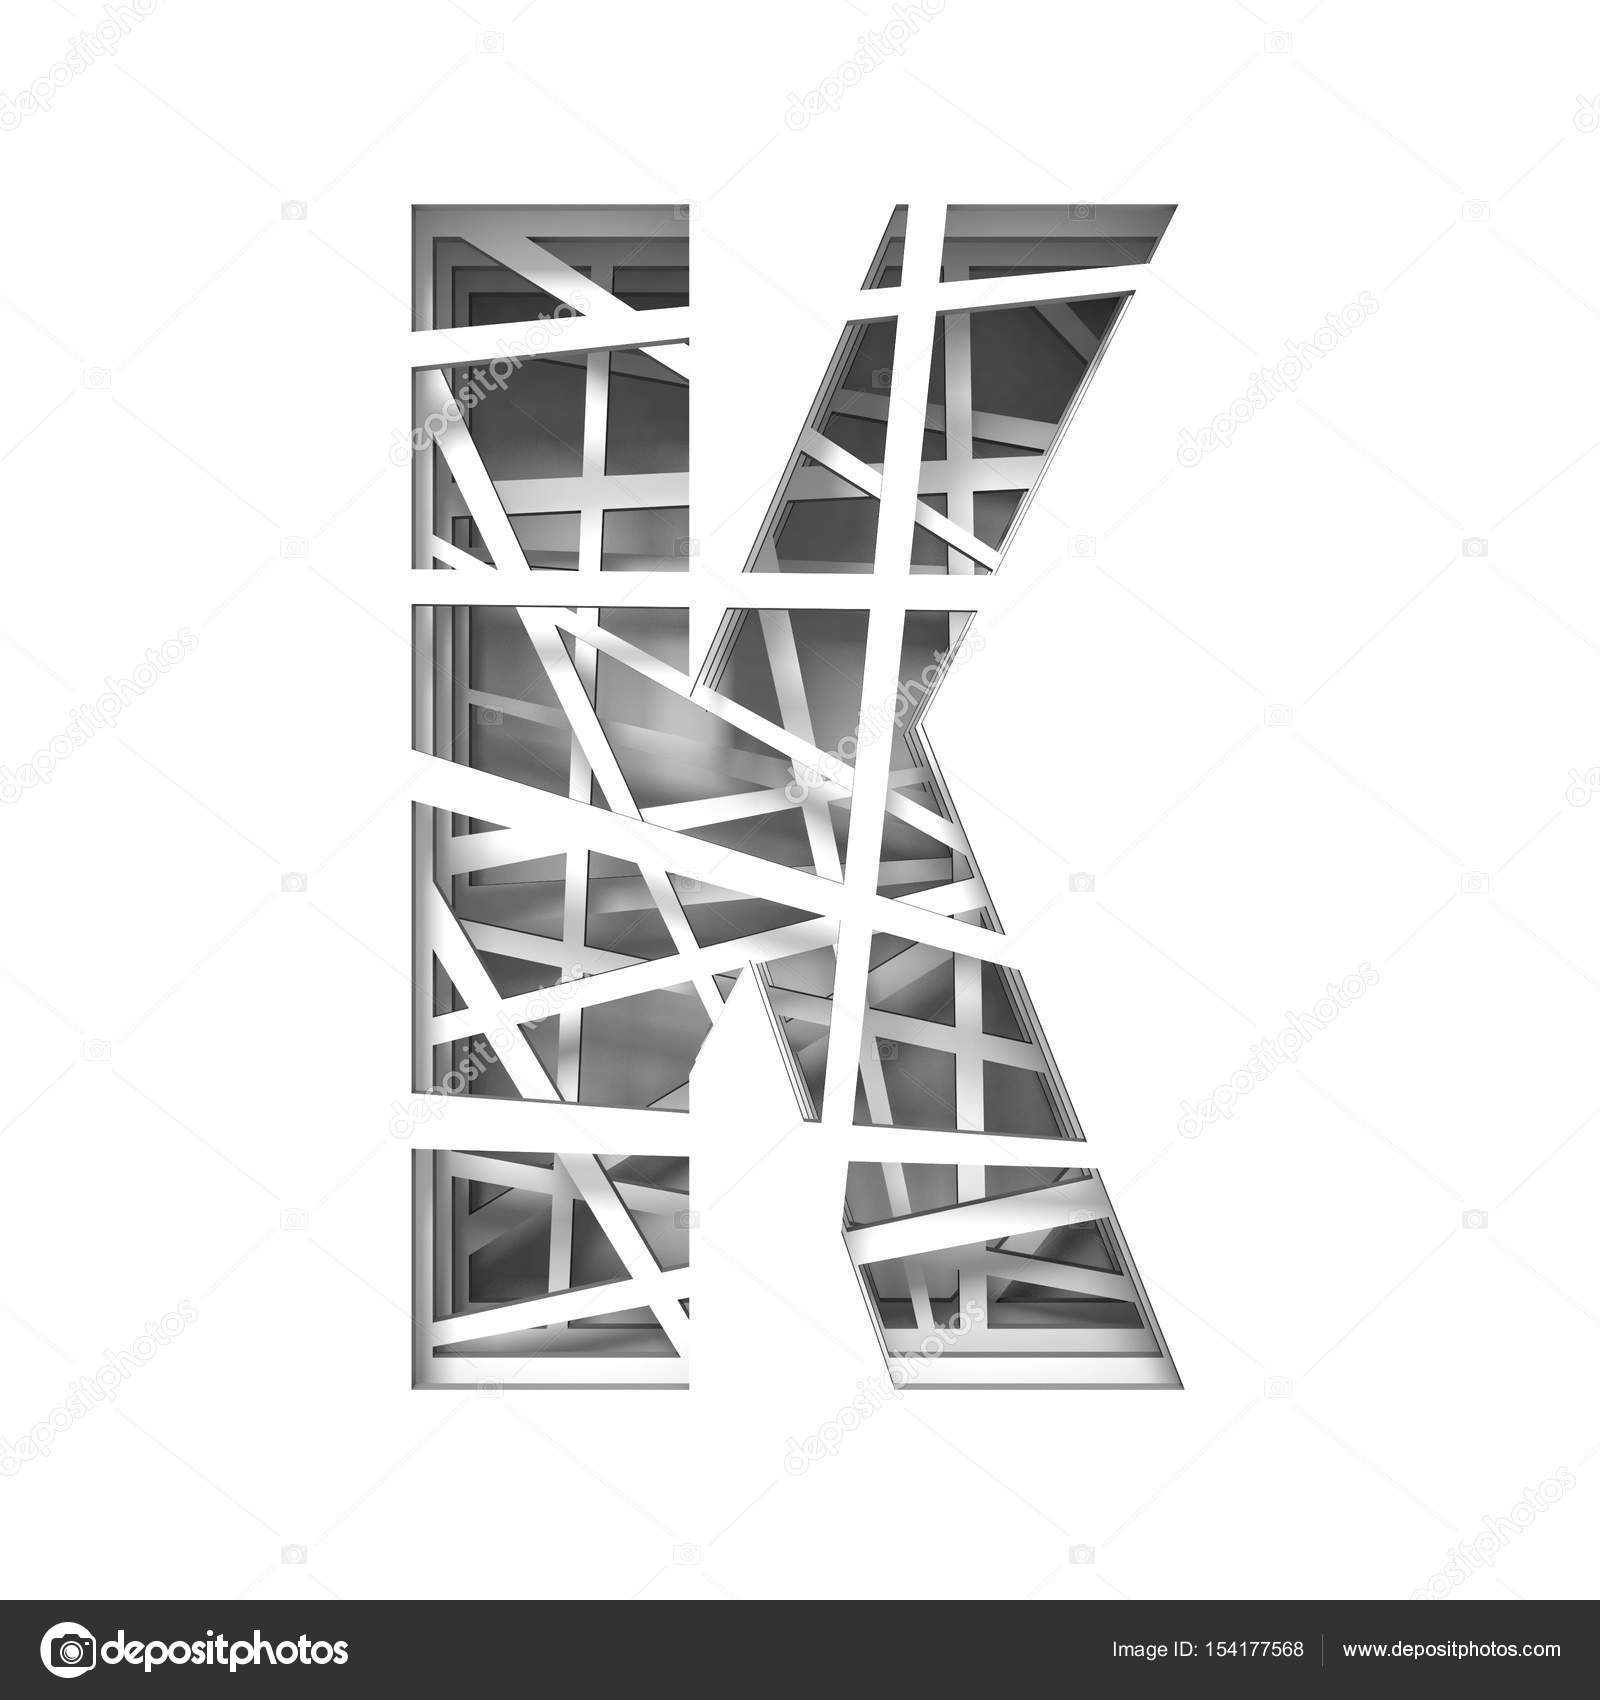 Paper cut out font letter k 3d stock photo djmilic 154177568 paper cut out font letter k 3d stock photo spiritdancerdesigns Image collections